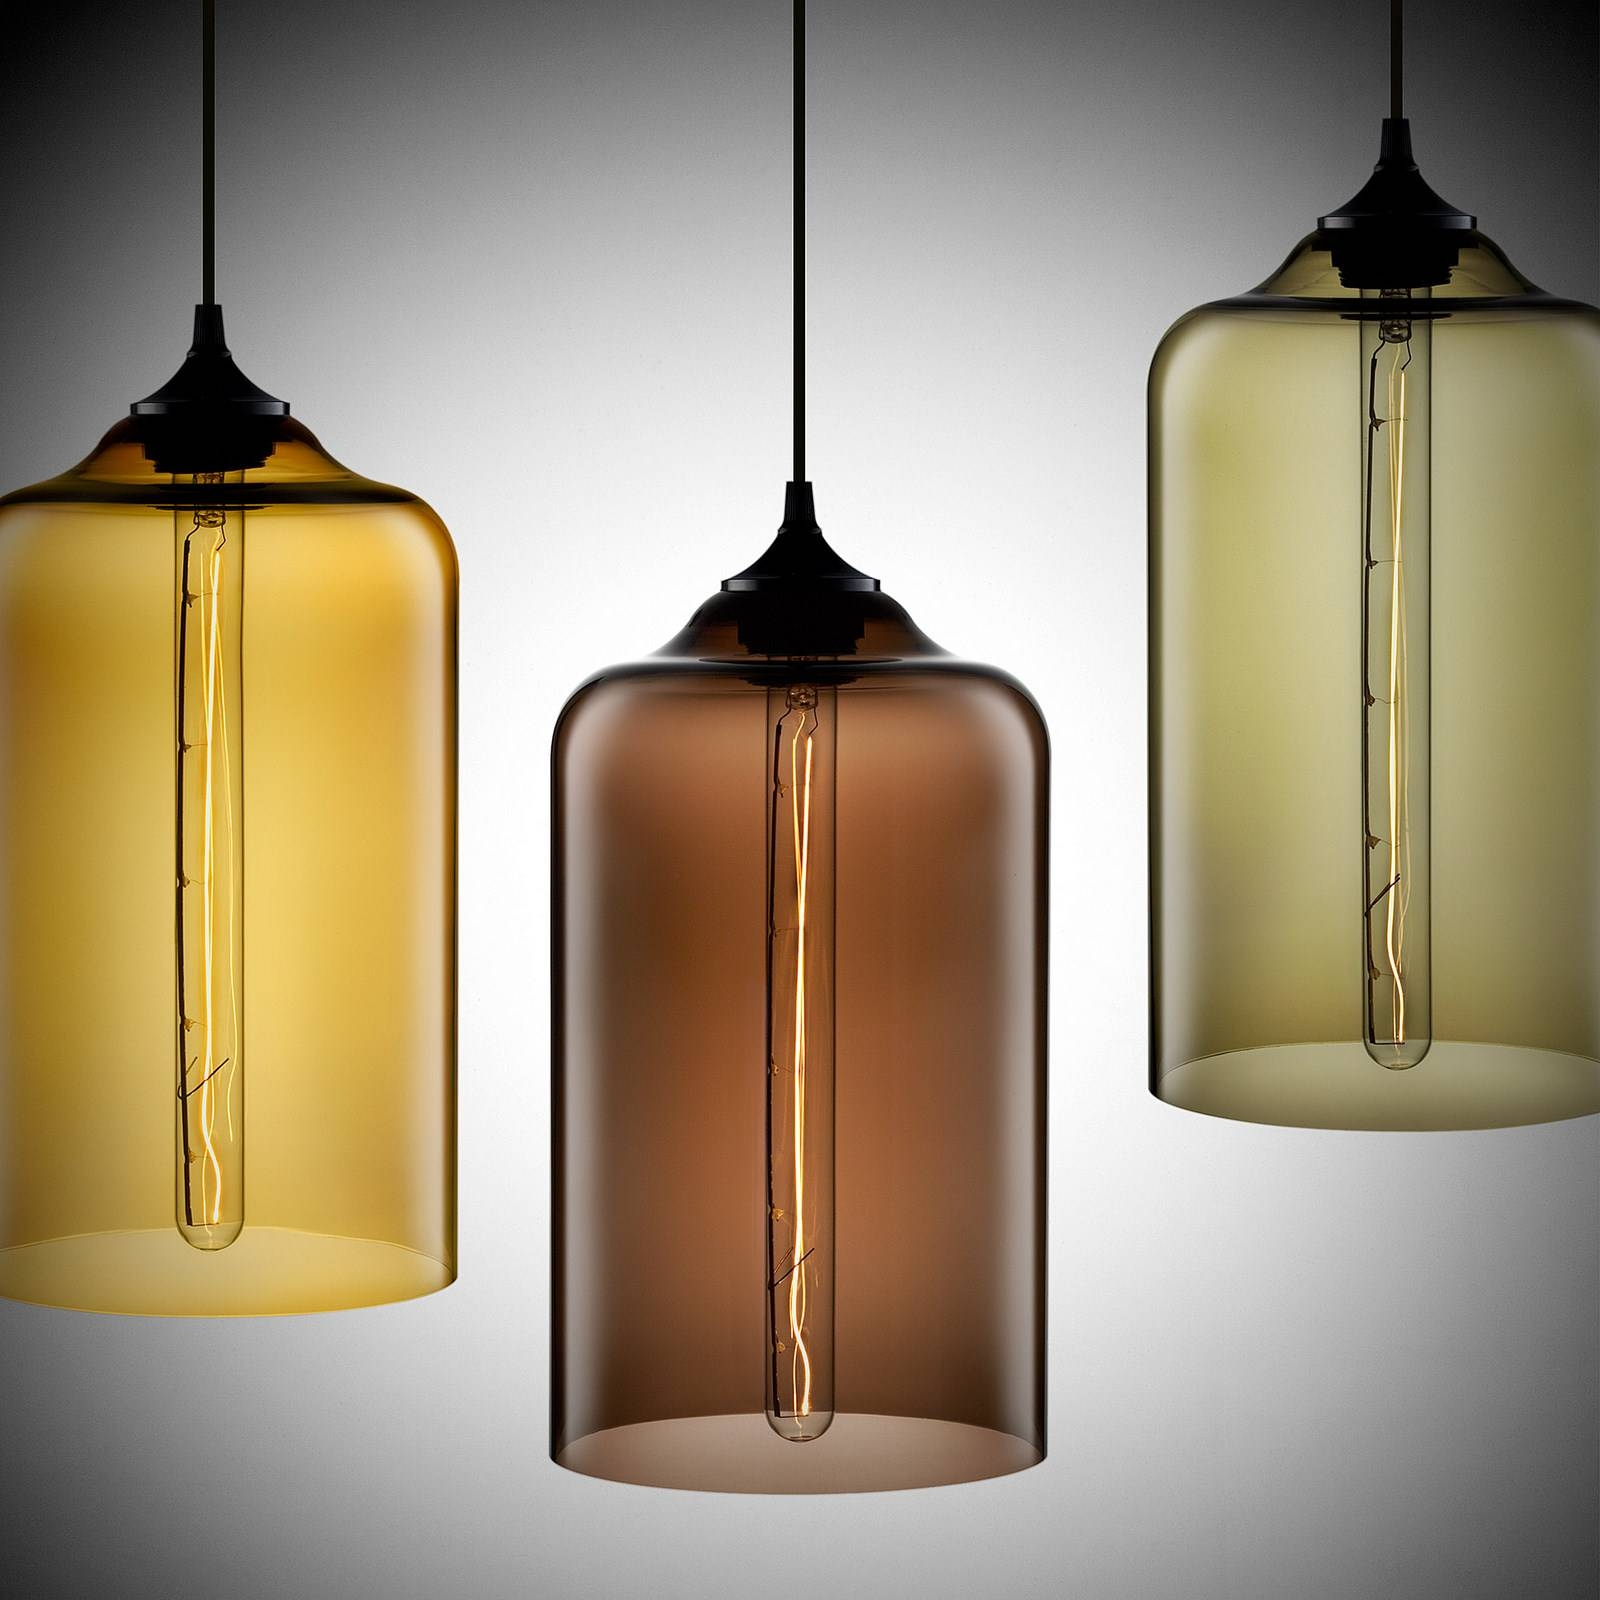 Decoration : Flawless Pendant Lighting Three Kitchen Pendant Lamps regarding Brown Glass Pendant Lights (Image 4 of 15)